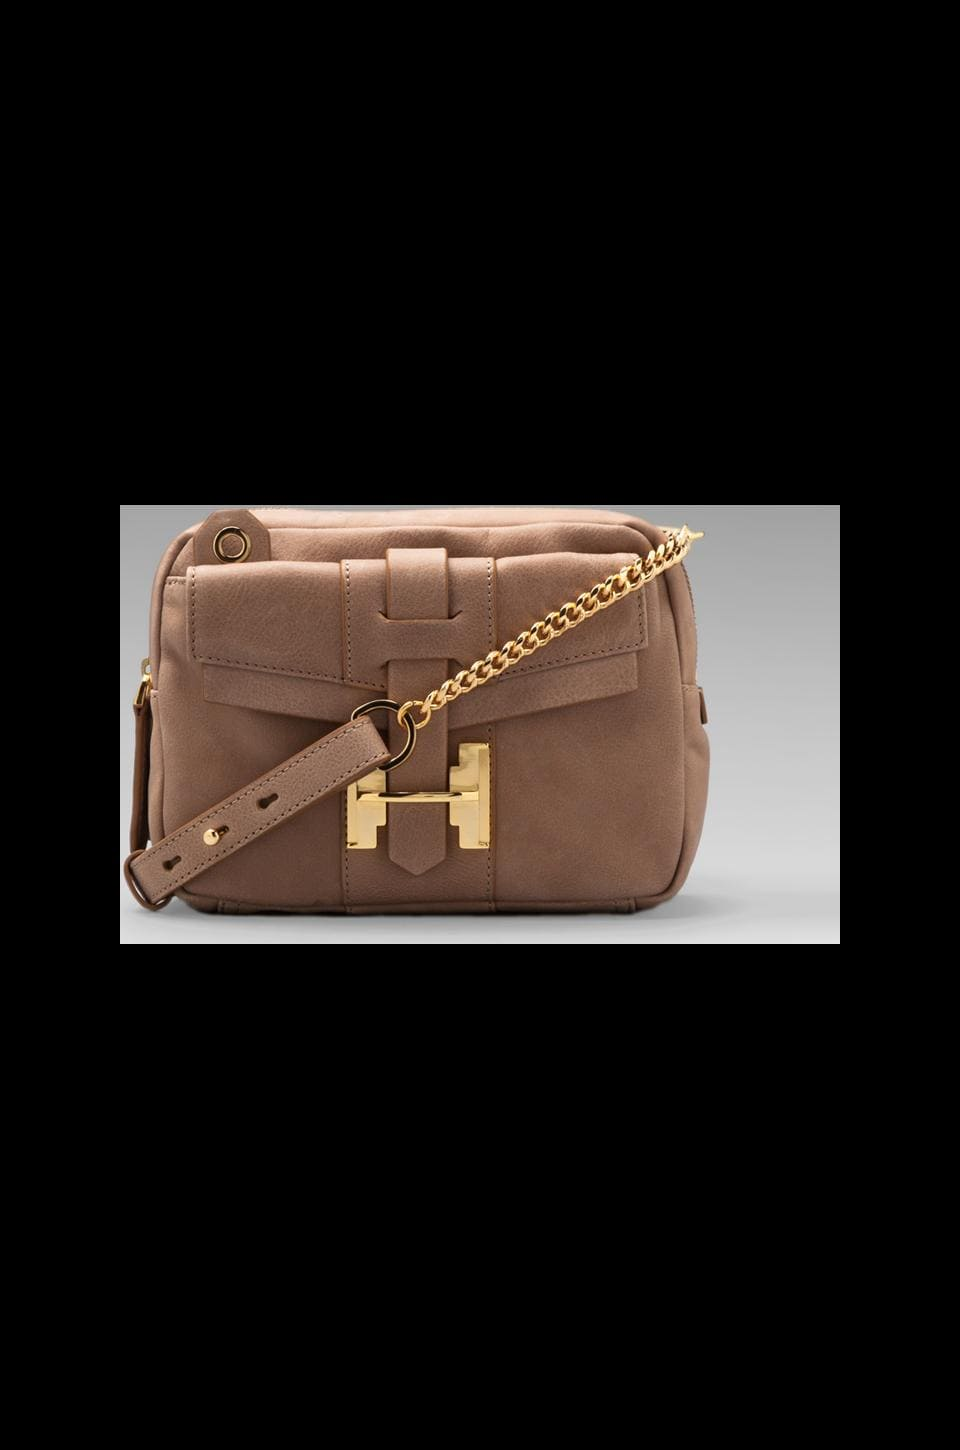 Halston Heritage Preppy Small Crossbody in Sand